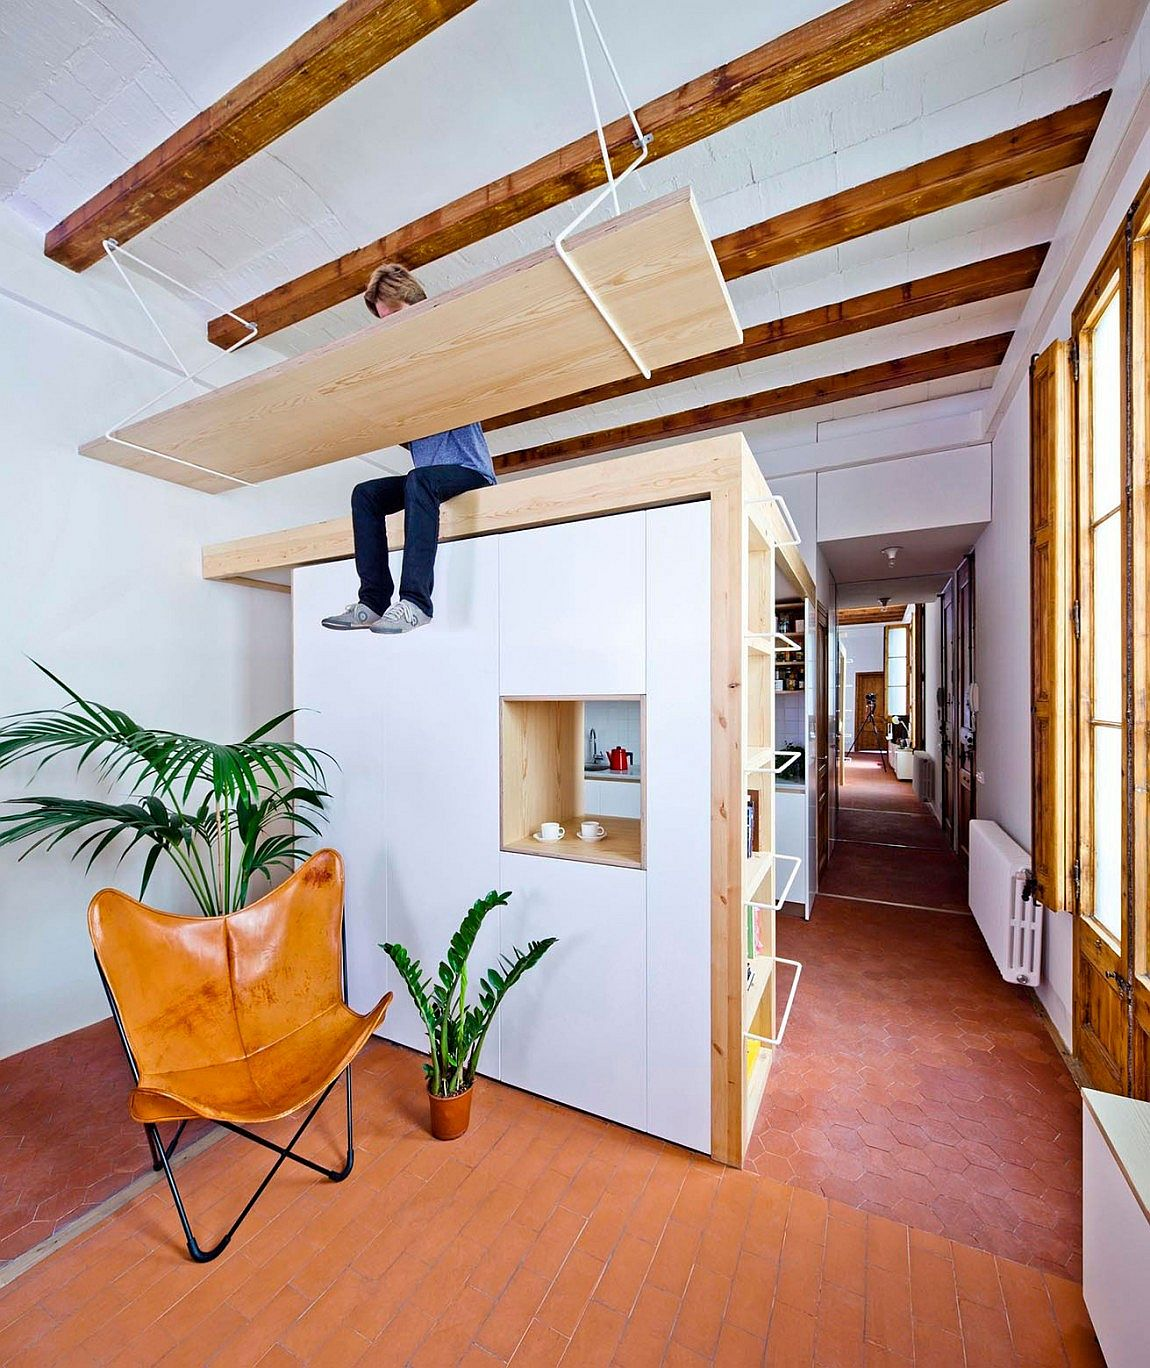 20 Mezzanine Apartment Ideas and Plans for the Spave-Savvy Urbanite